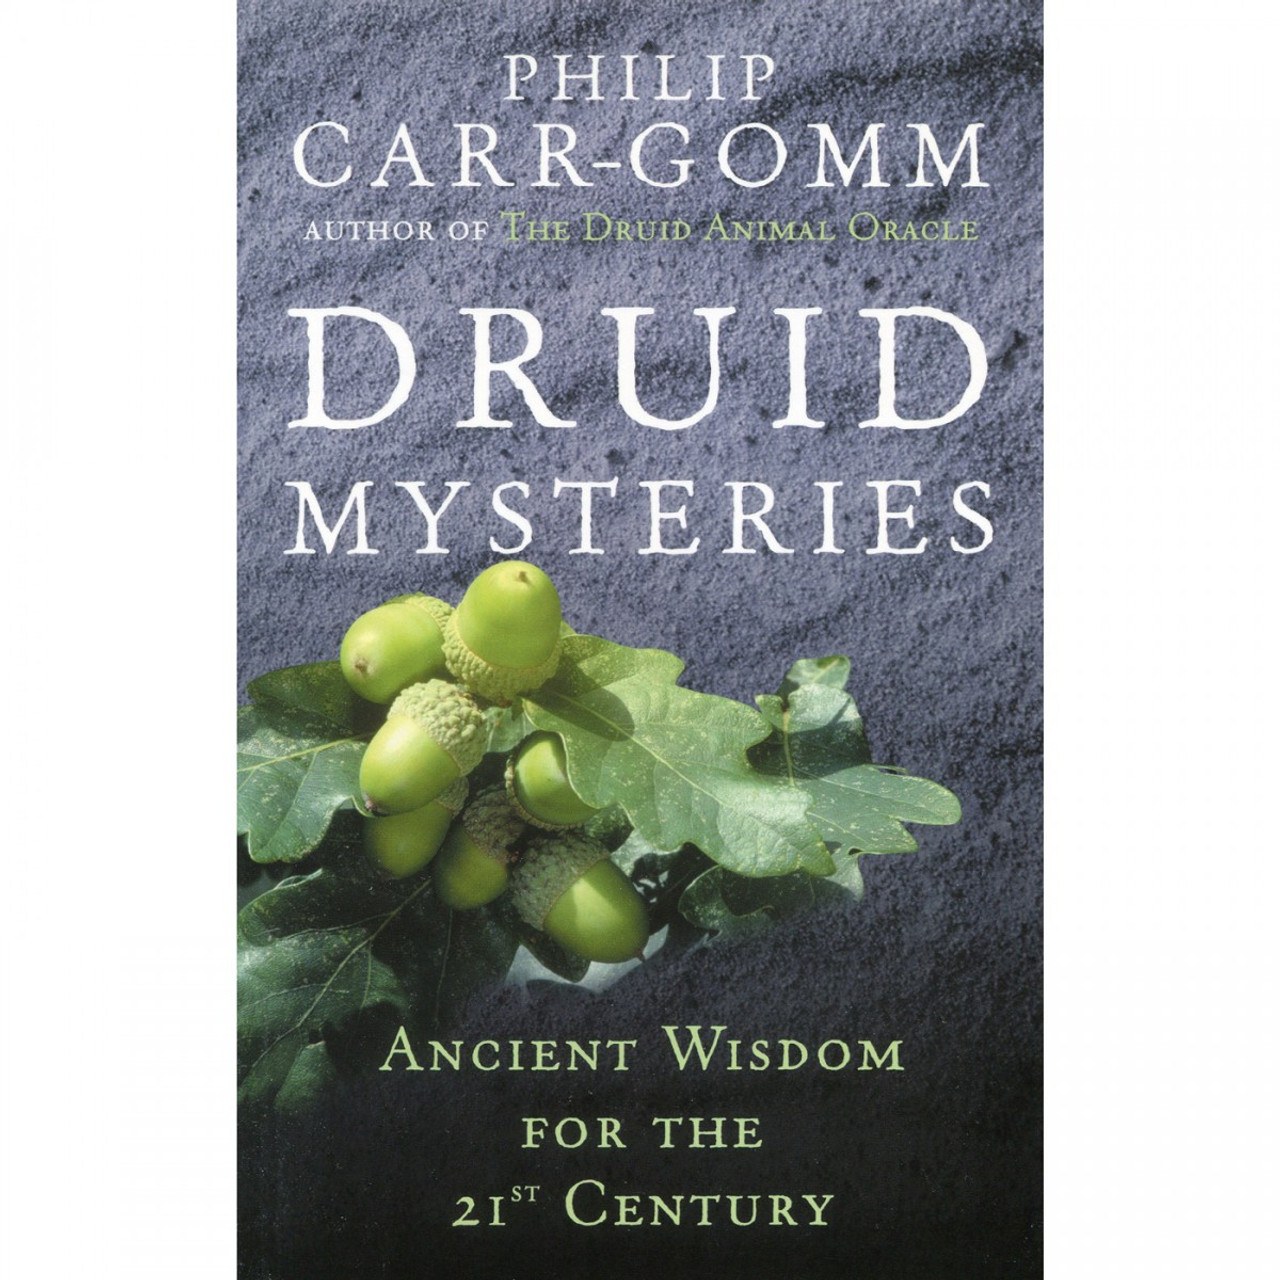 Druid Mysteries by Philip Carr-Gomm